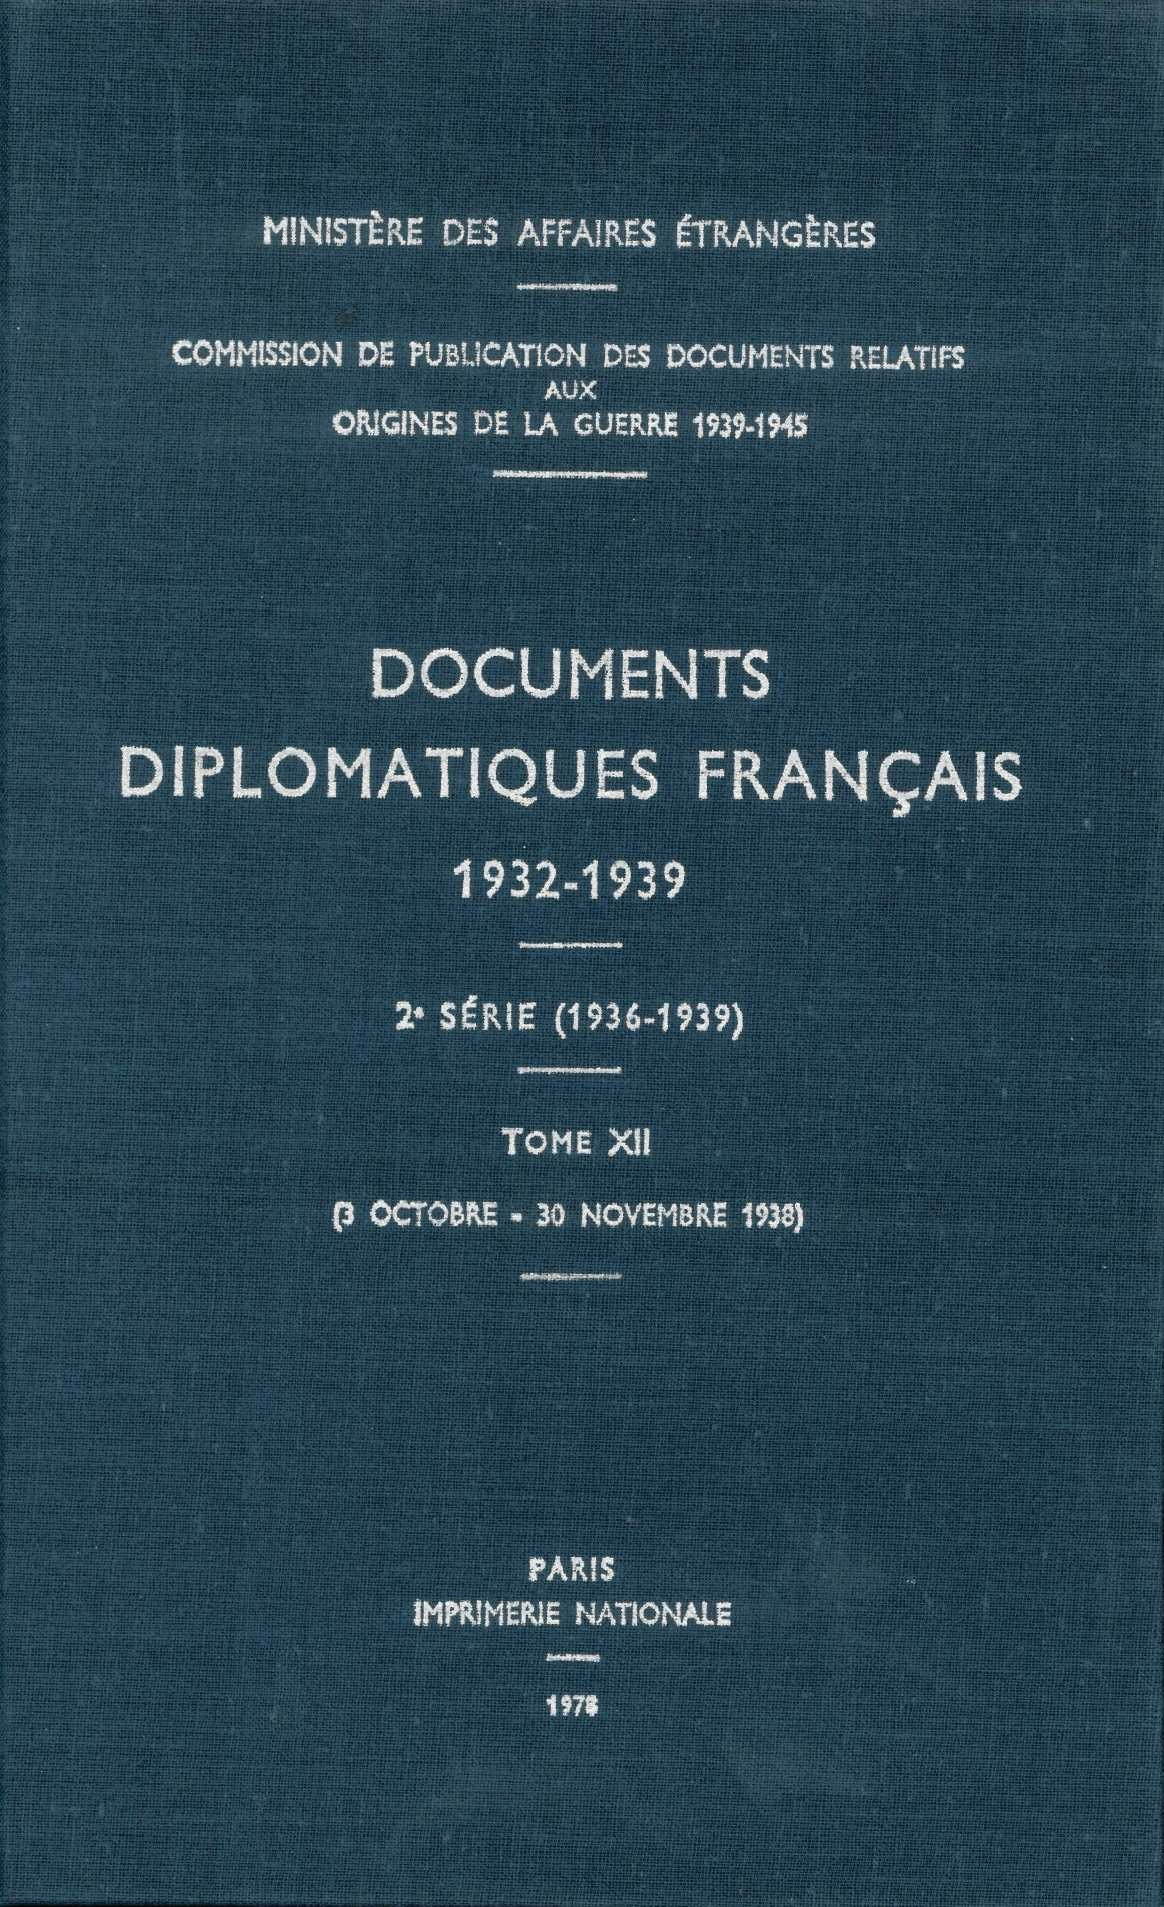 DOCUMENTS DIPLOMATIQUES FRANCAIS - 1938 - TOME V (2 OCTOBRE - 30 NOVEMBRE)